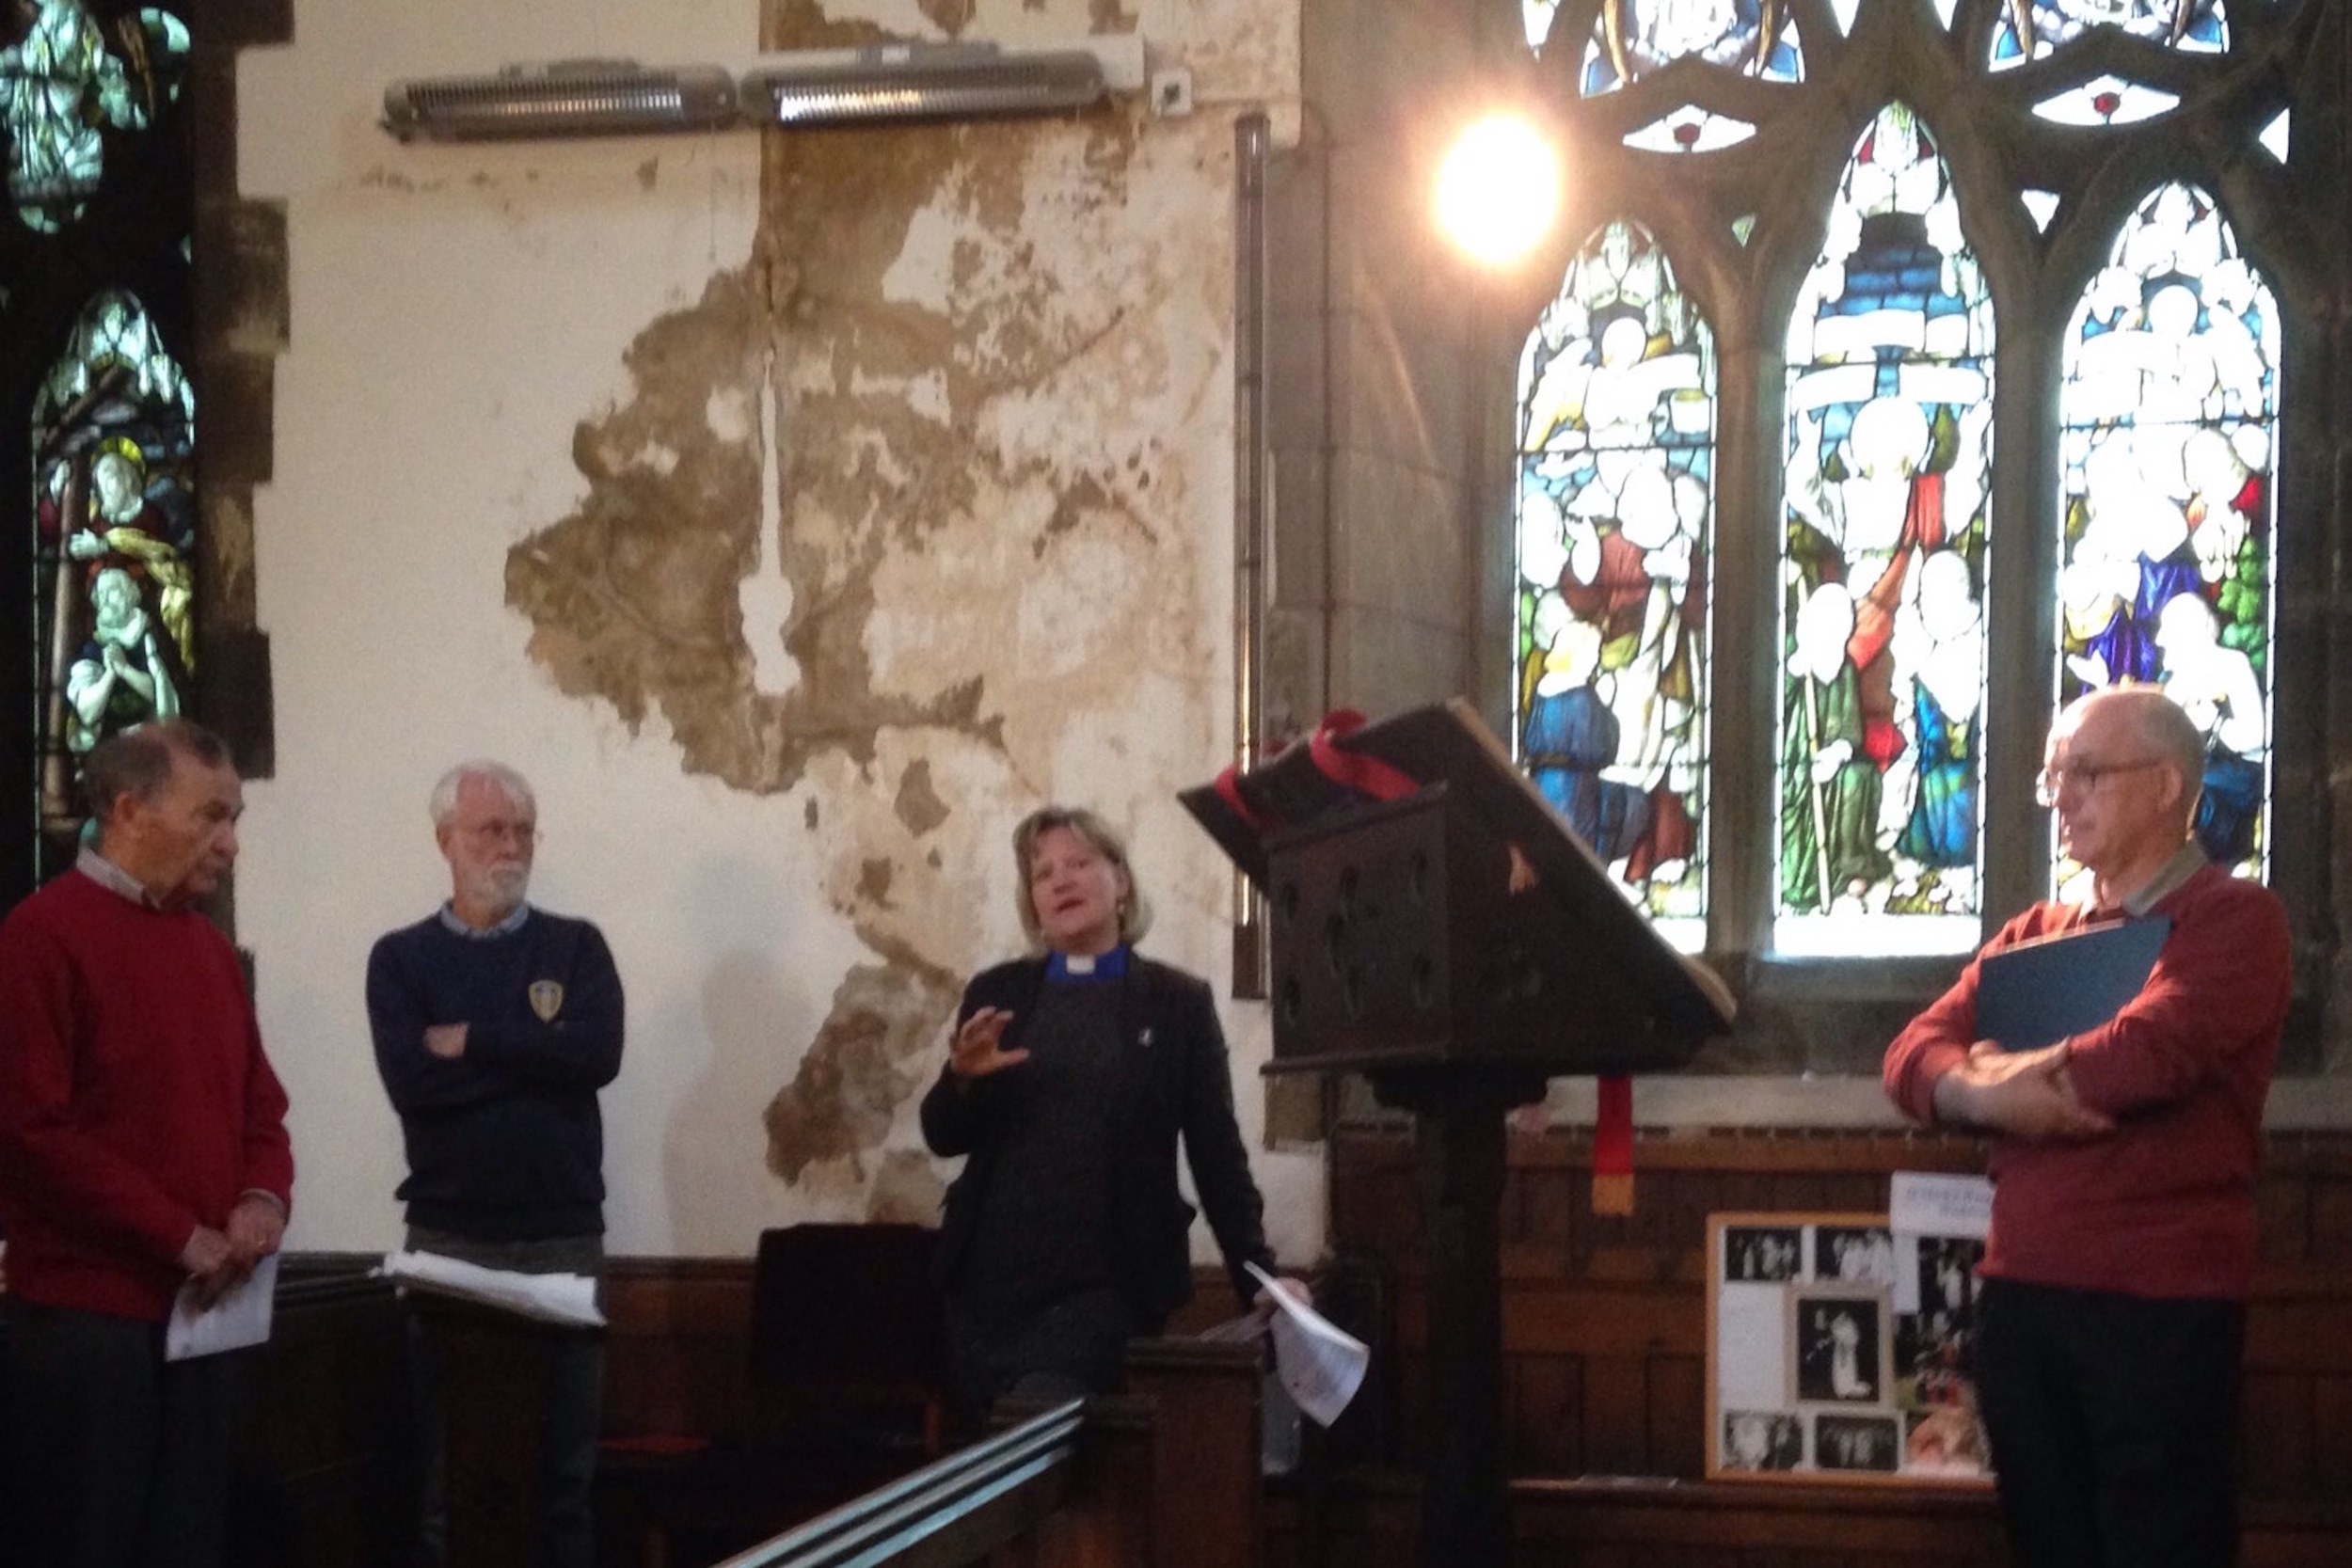 Rev. Joanna Seabourne & one of our wardens, Jim Rowland, discuss St Mark's with Graham.